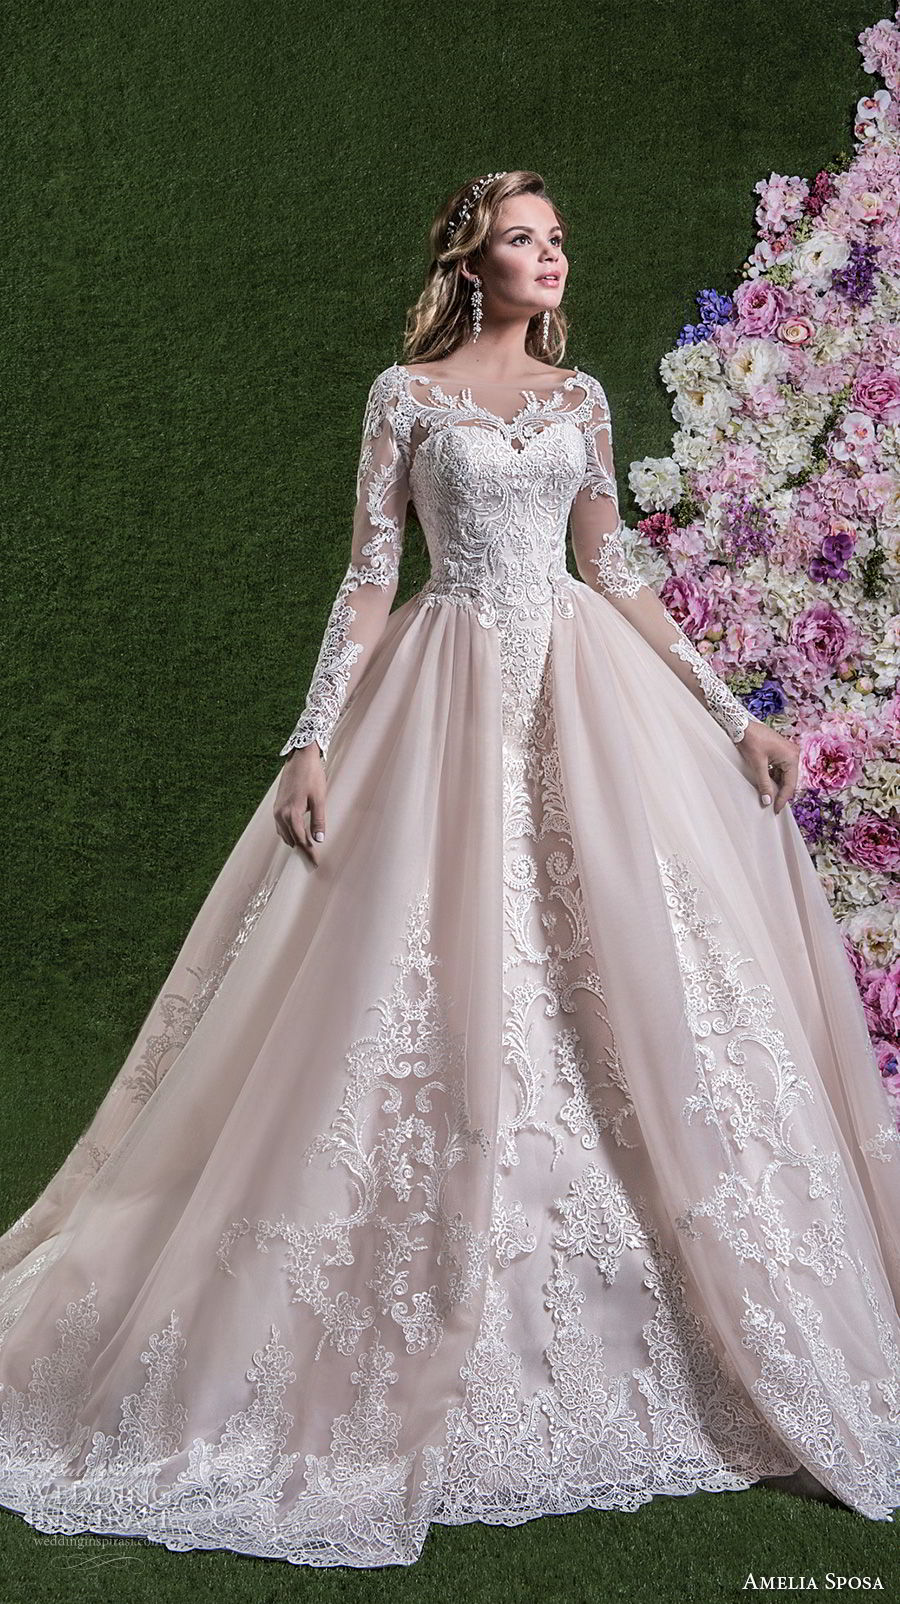 Amelia Sposa 2018 Wedding Dresses | Wedding Inspirasi